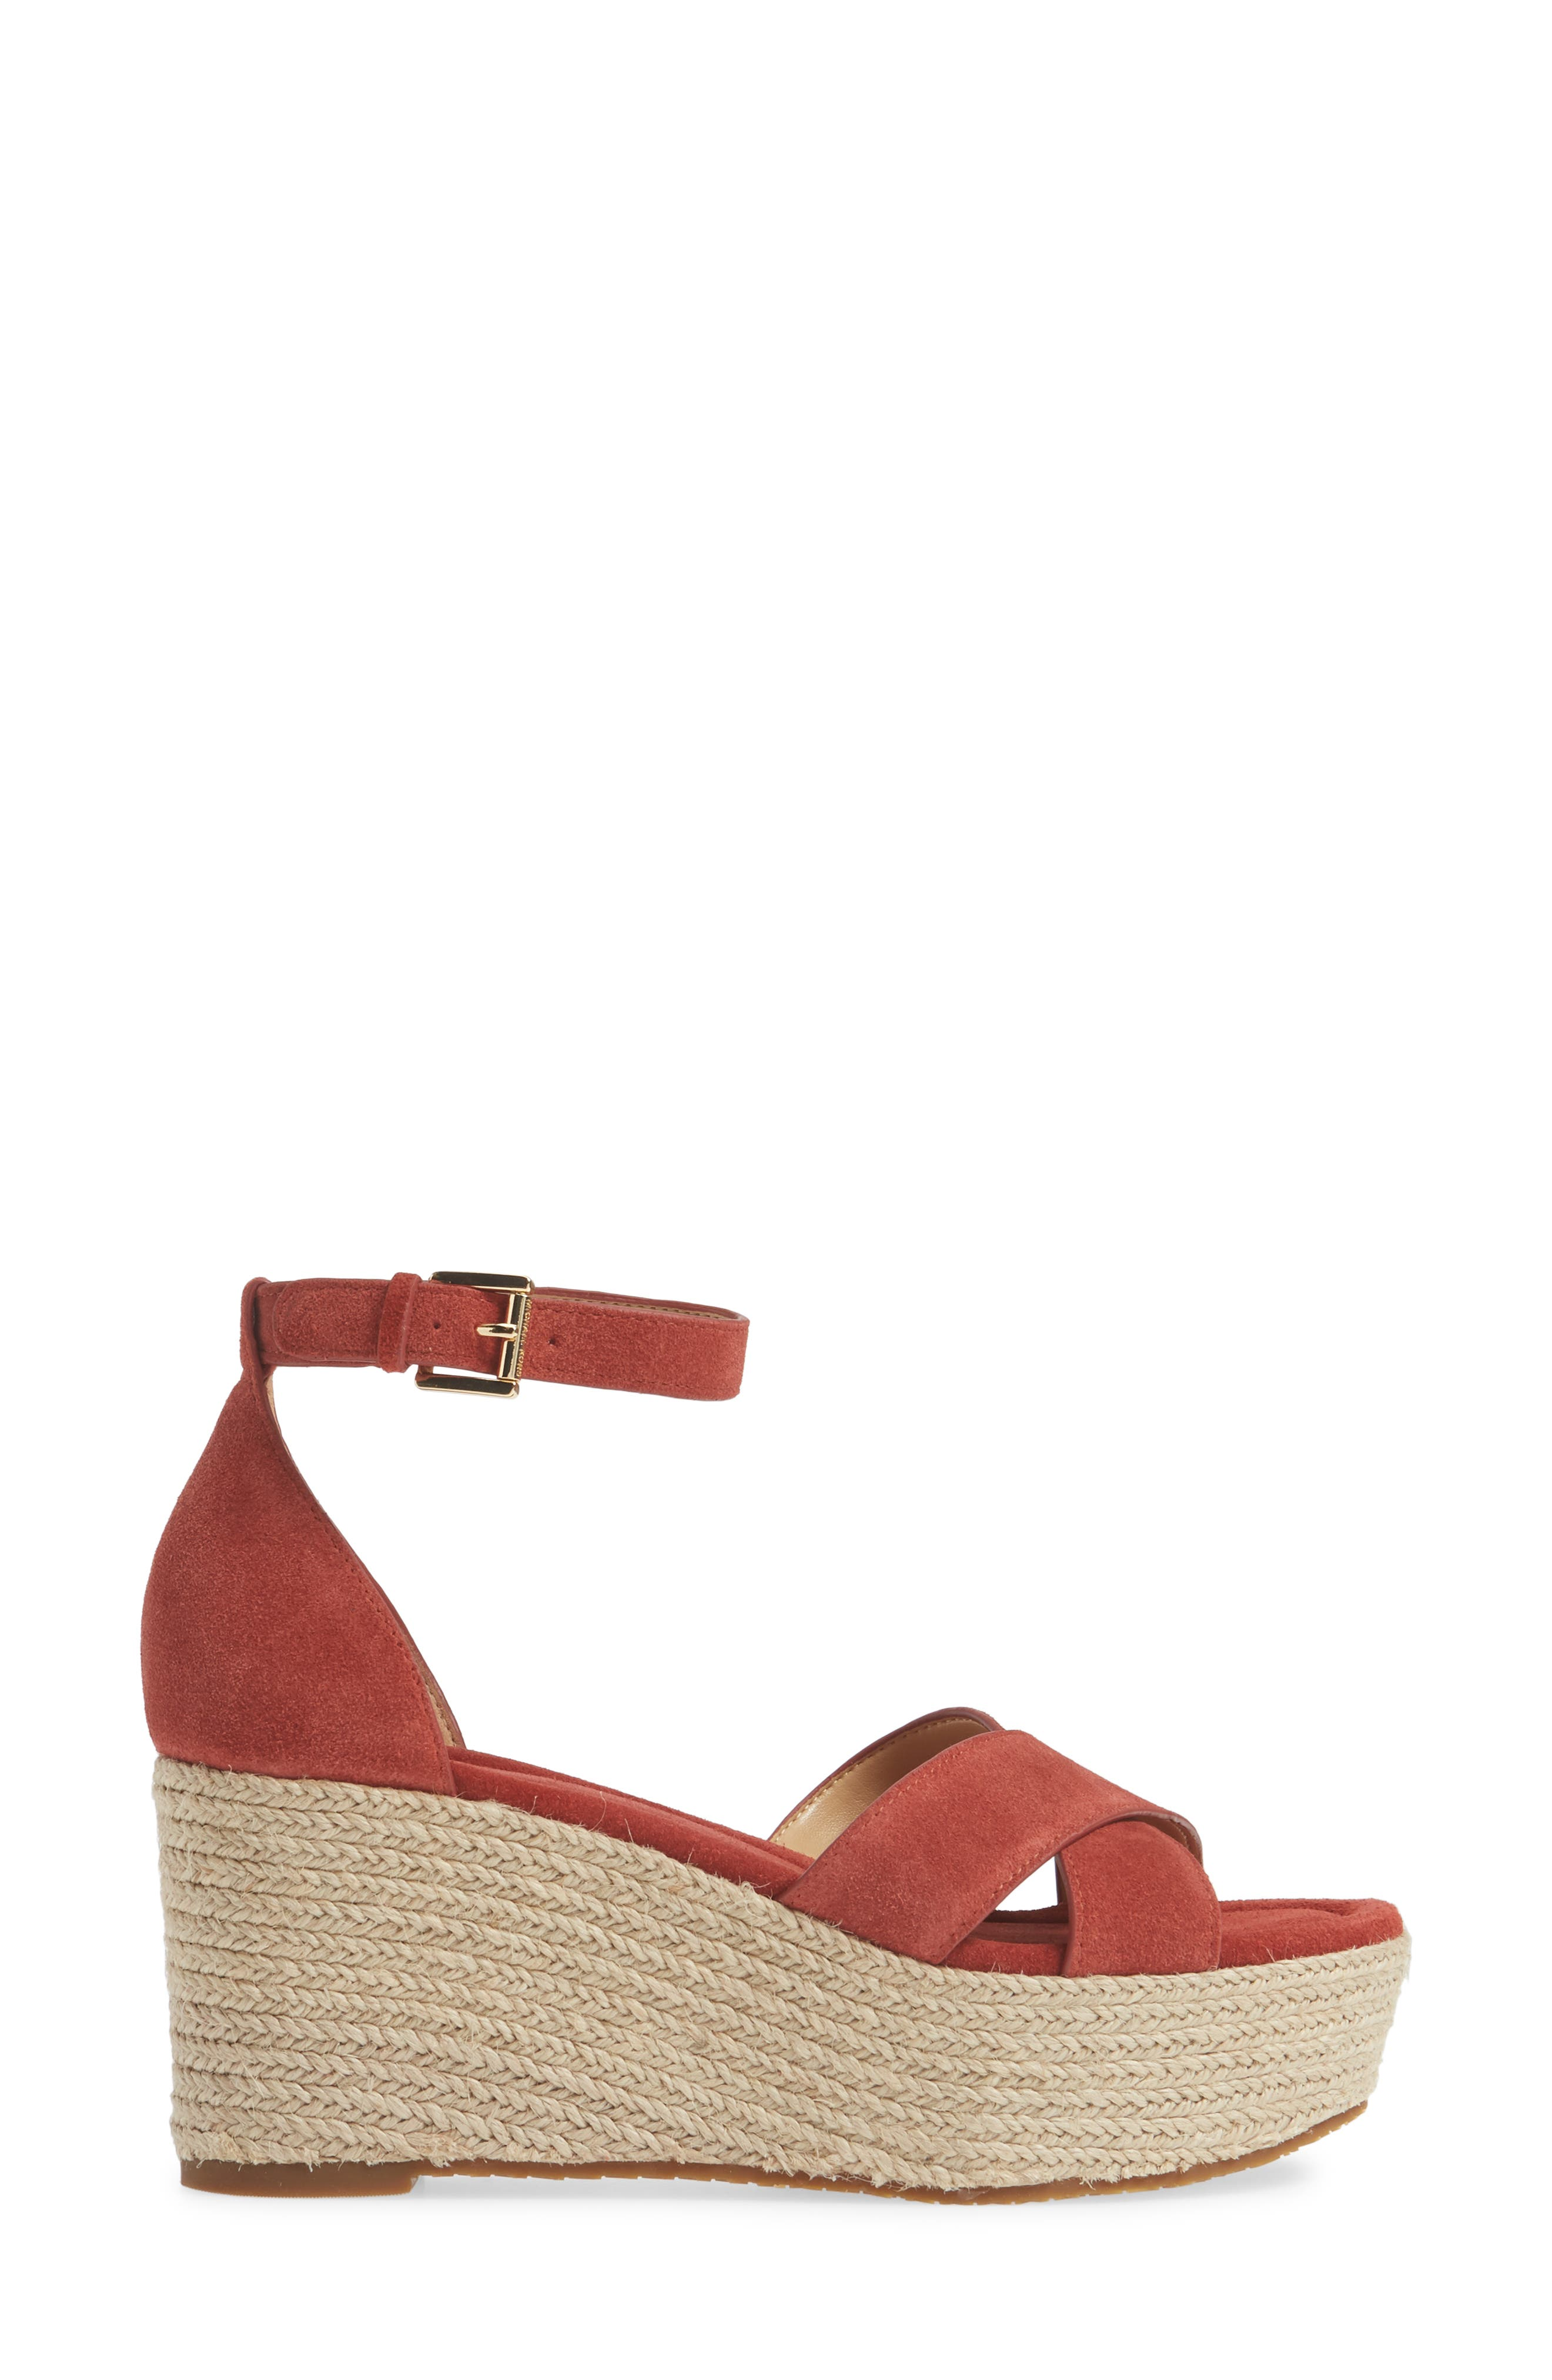 MICHAEL MICHAEL KORS, Desiree Jute Espadrille Wedge, Alternate thumbnail 3, color, TERRACOTTA SUEDE